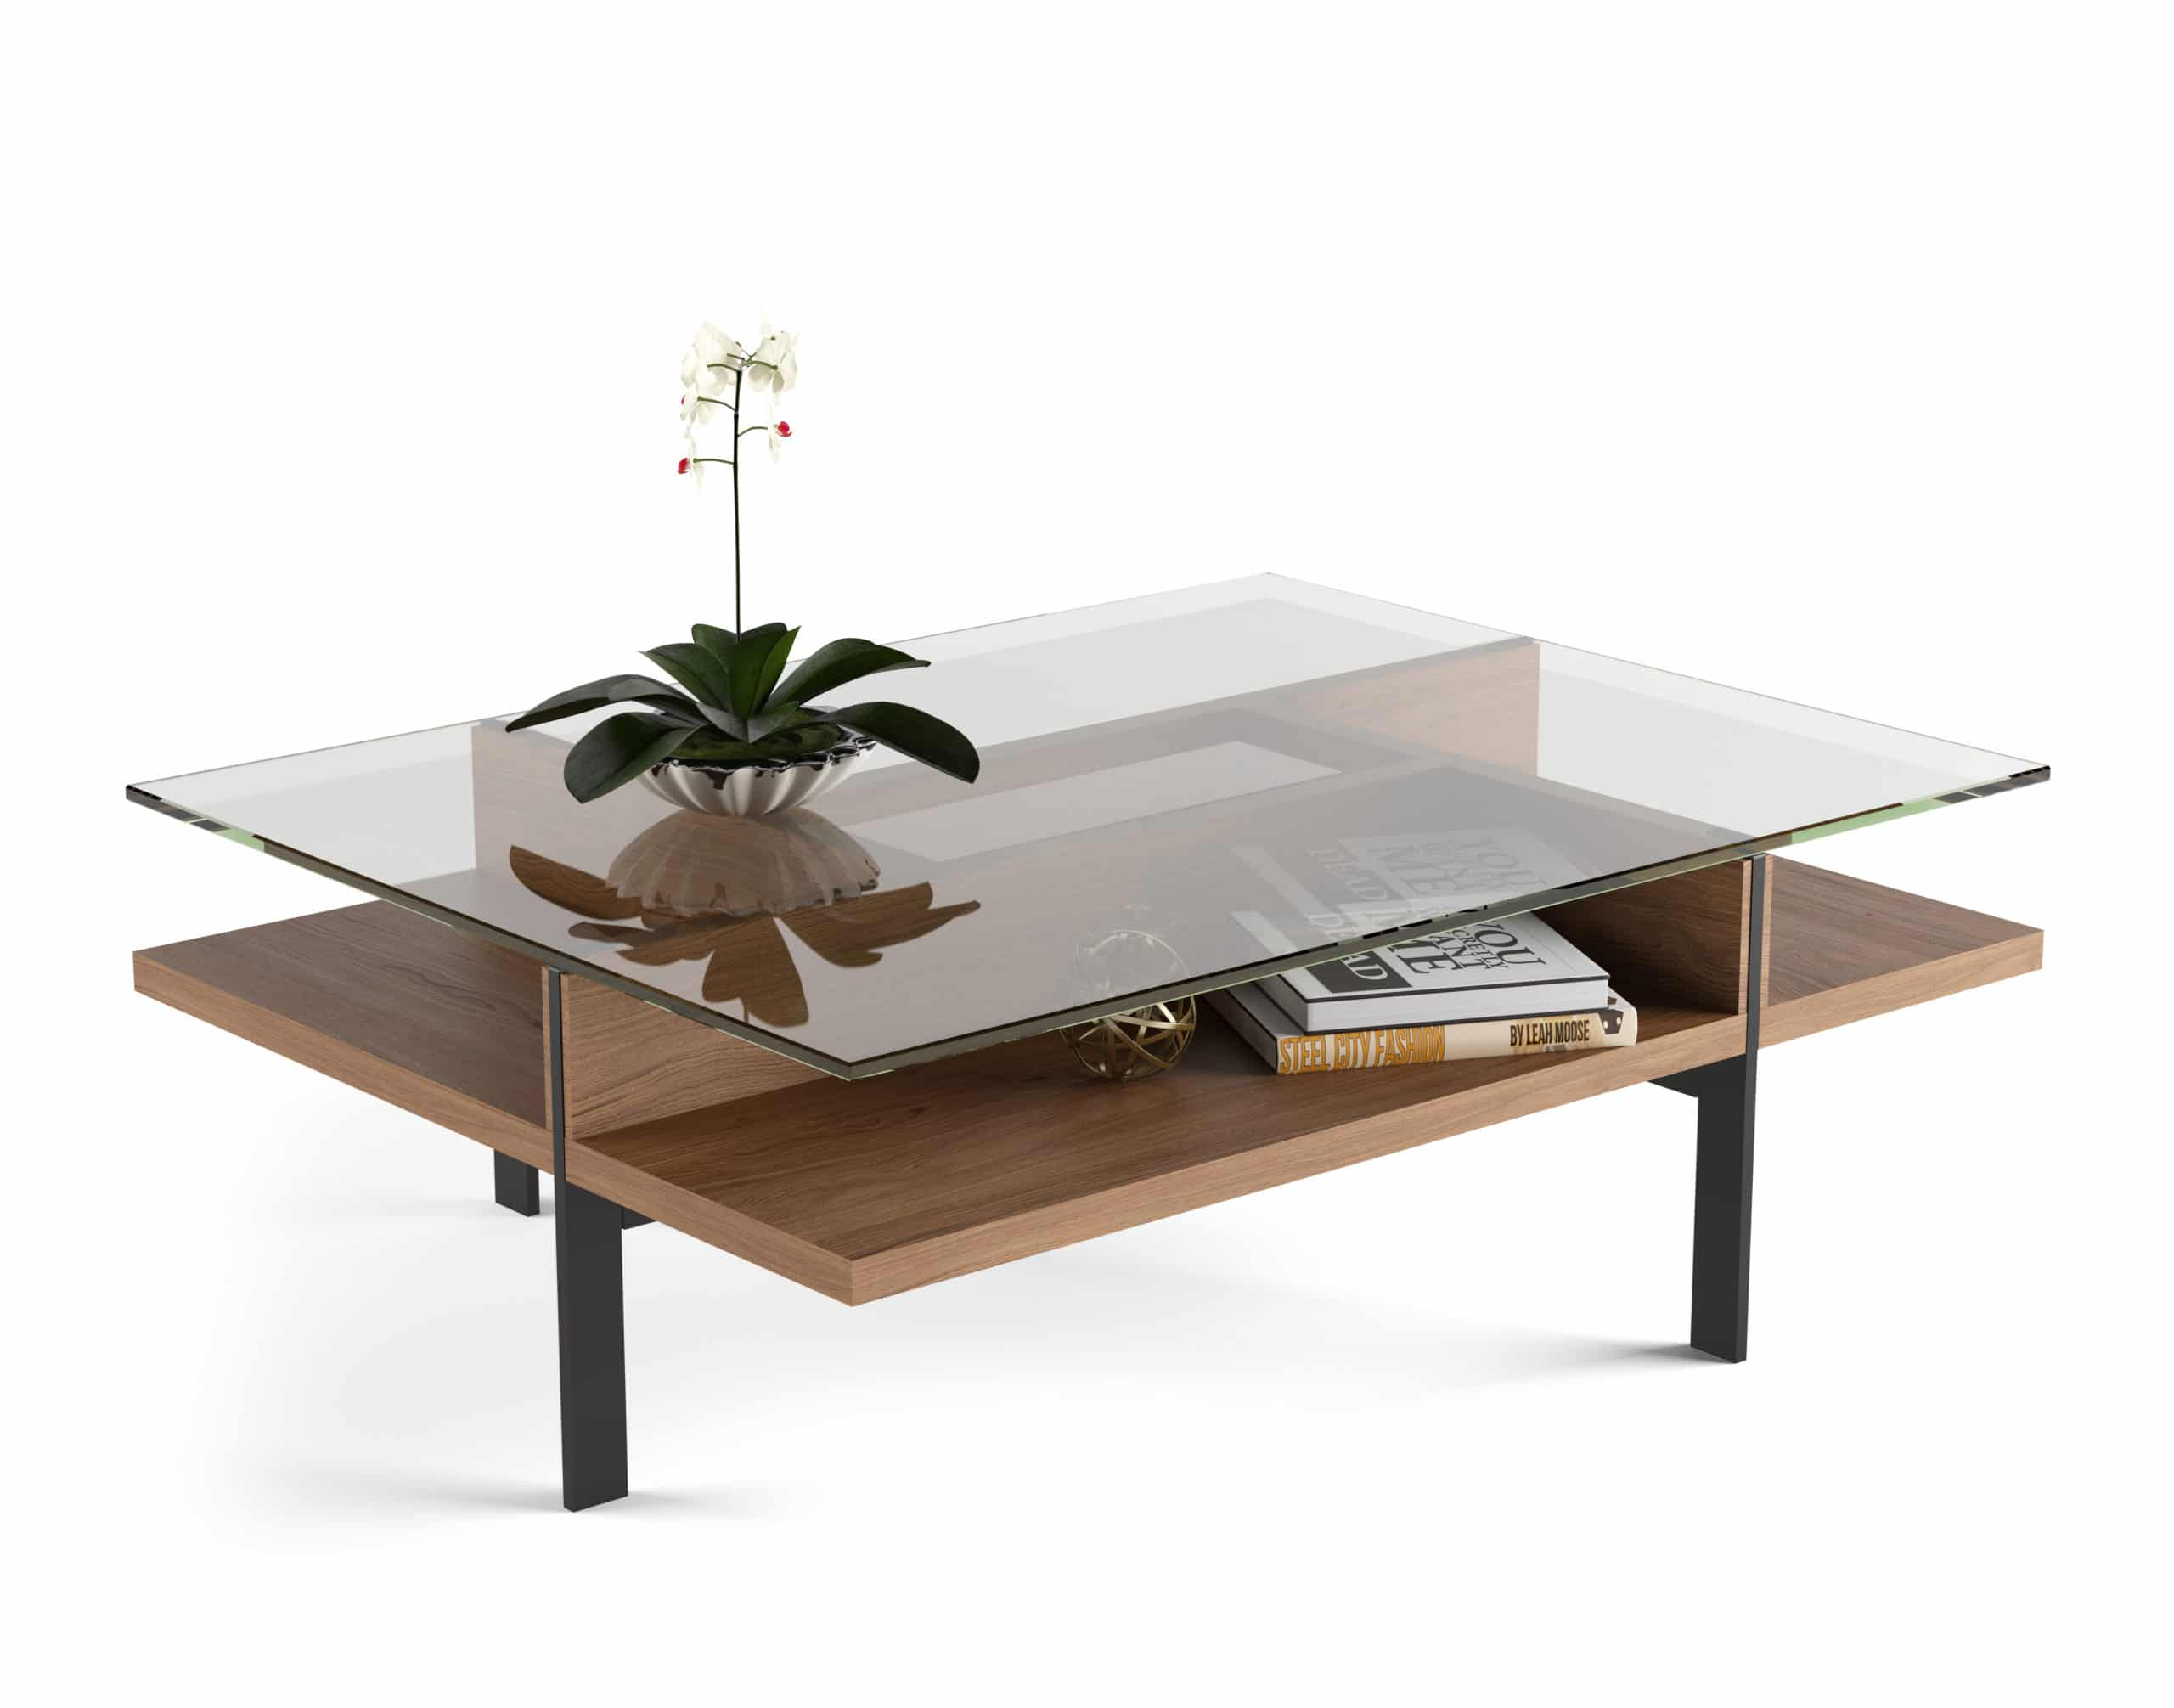 Terrace 1152 Modern Rectangular Glass Coffee Table | BDI Furniture